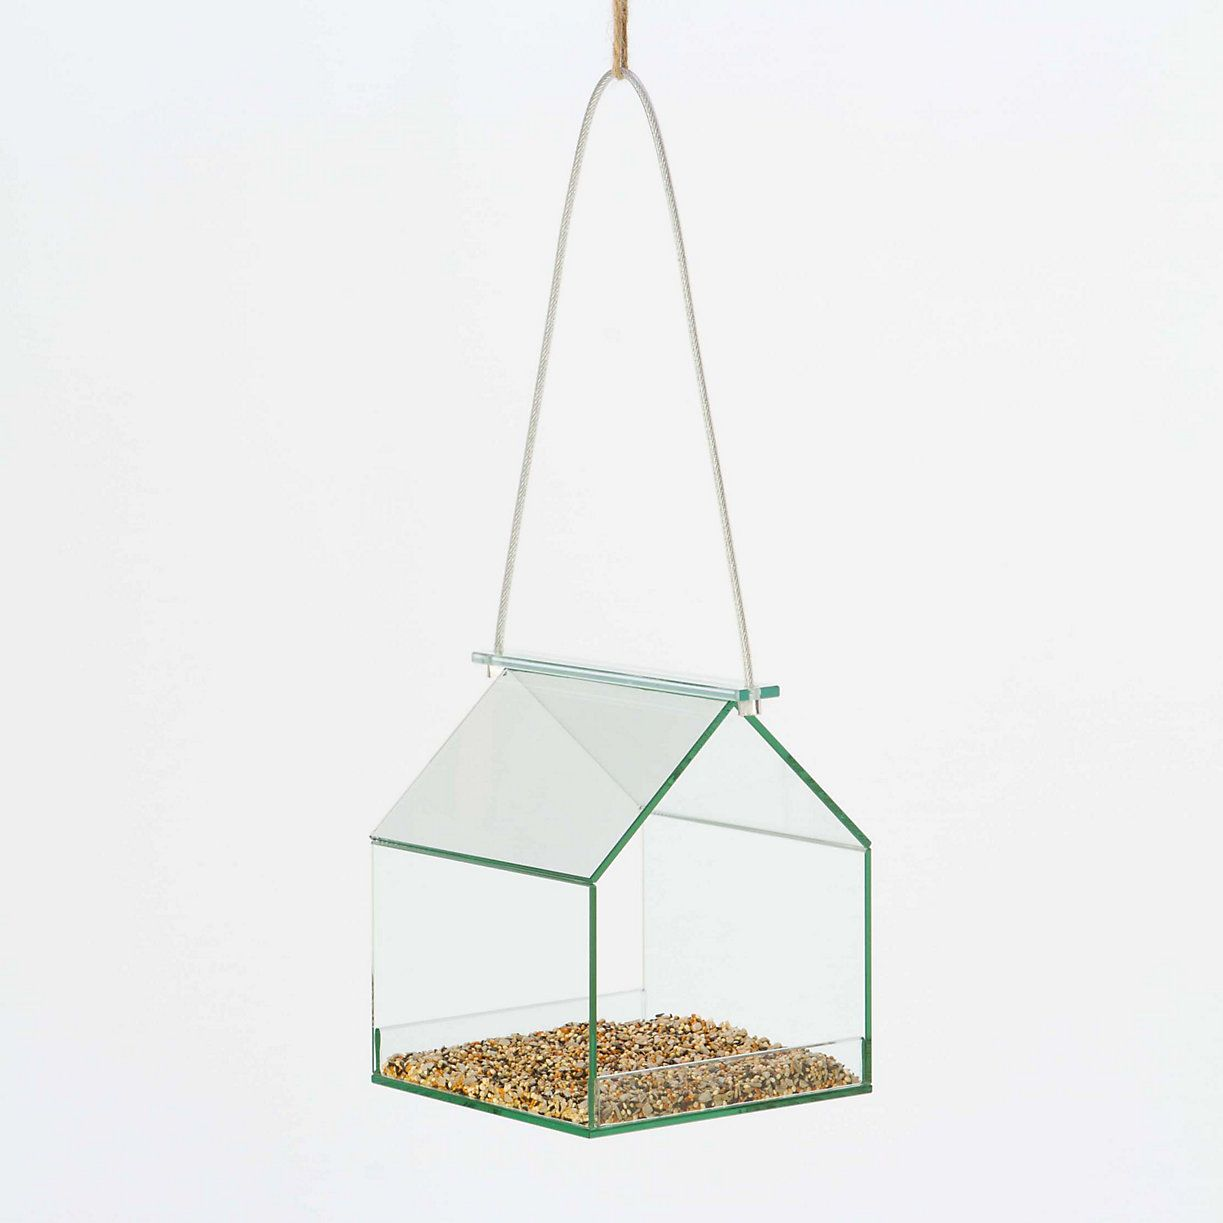 Glass House Birdfeeder in New SHOP Outdoor Living at Terrain